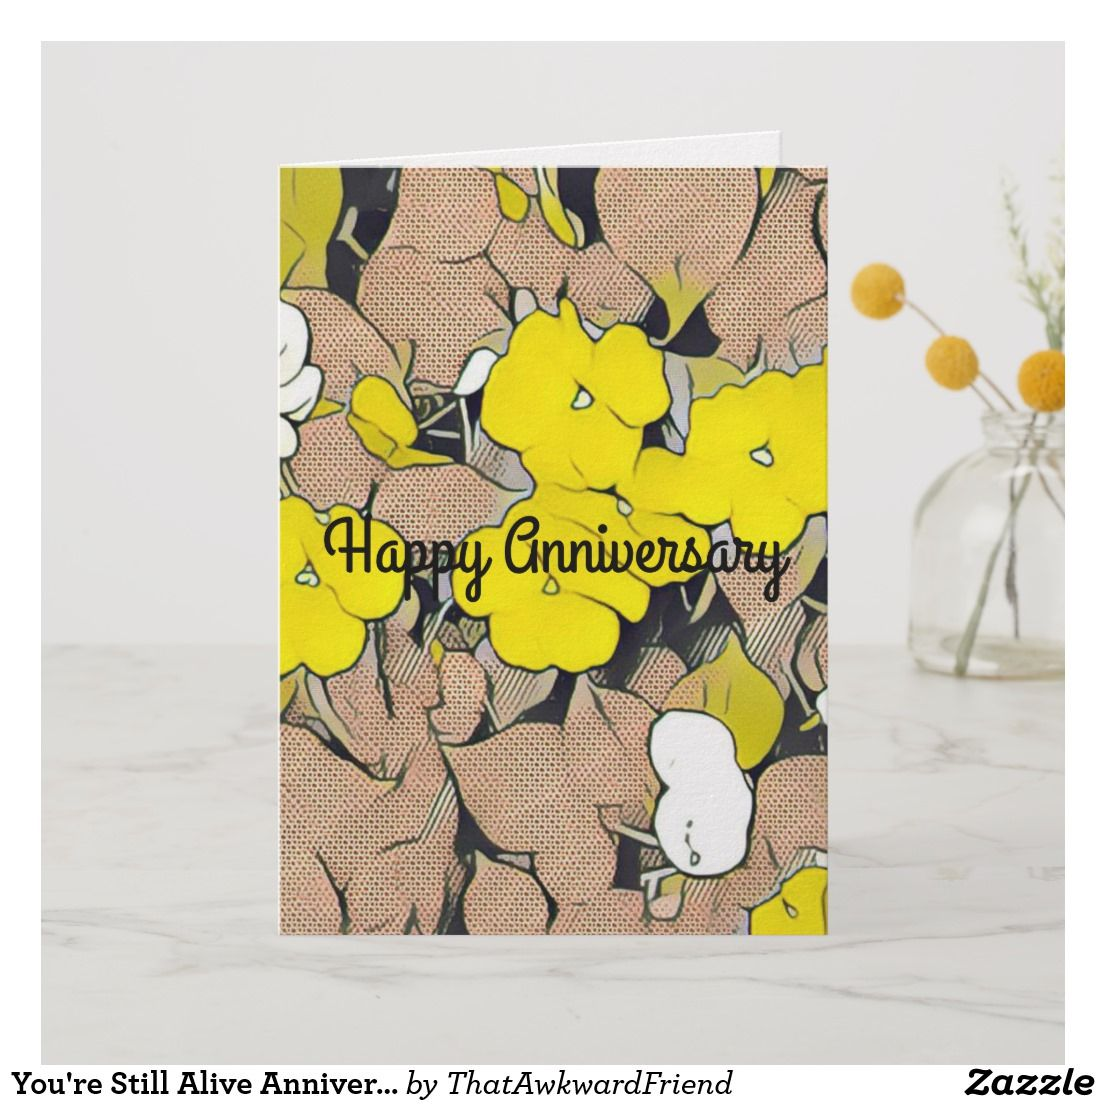 You Re Still Alive Anniversary Card Zazzle Com Funny Anniversary Cards Anniversary Cards Anniversary Card Sayings